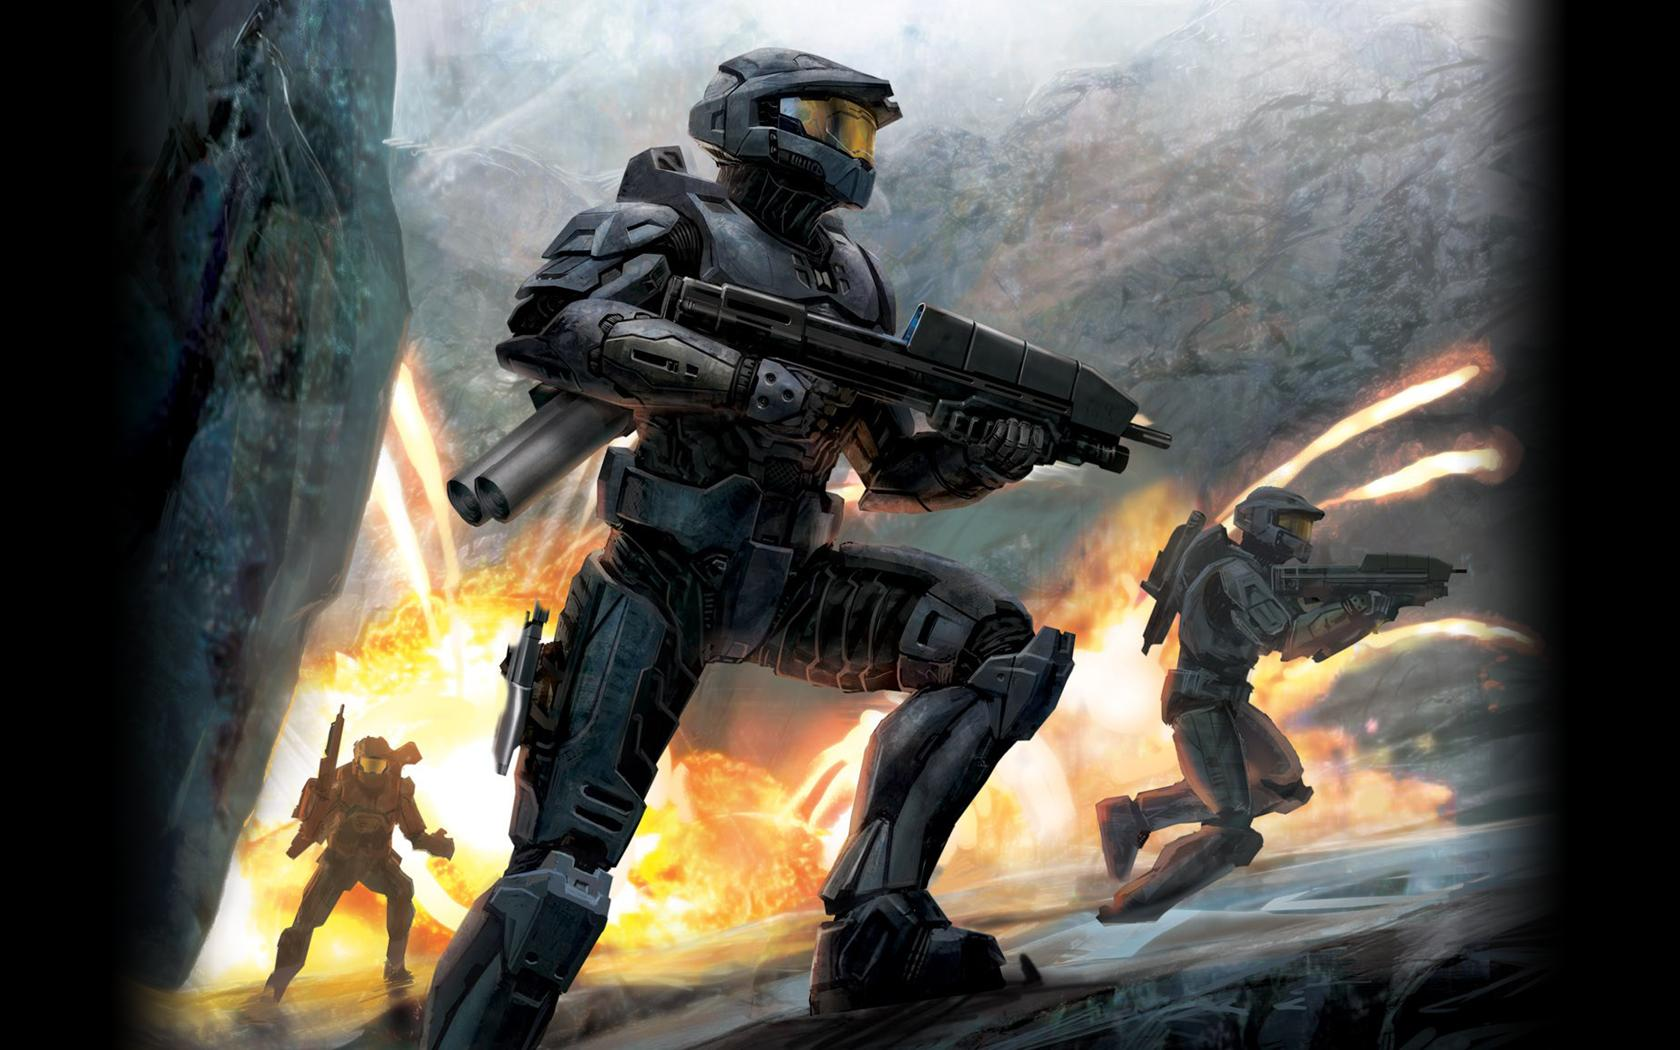 wallpaper free game halo - photo #8